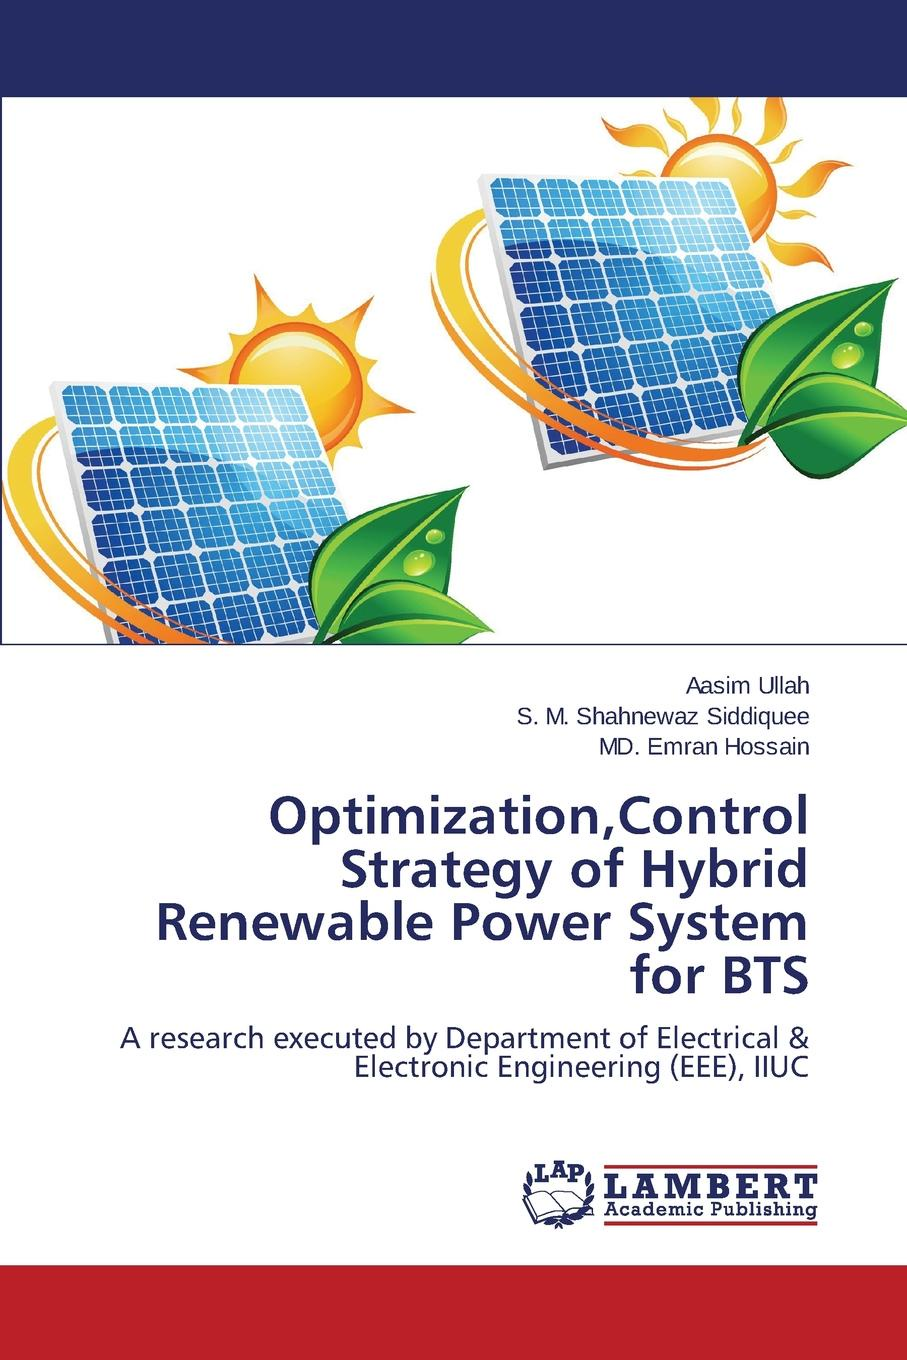 Ullah Aasim, Siddiquee S. M. Shahnewaz, Hossain MD Emran Optimization, Control Strategy of Hybrid Renewable Power System for Bts carprie new replacement atx motherboard switch on off reset power cable for pc computer 17aug23 dropshipping